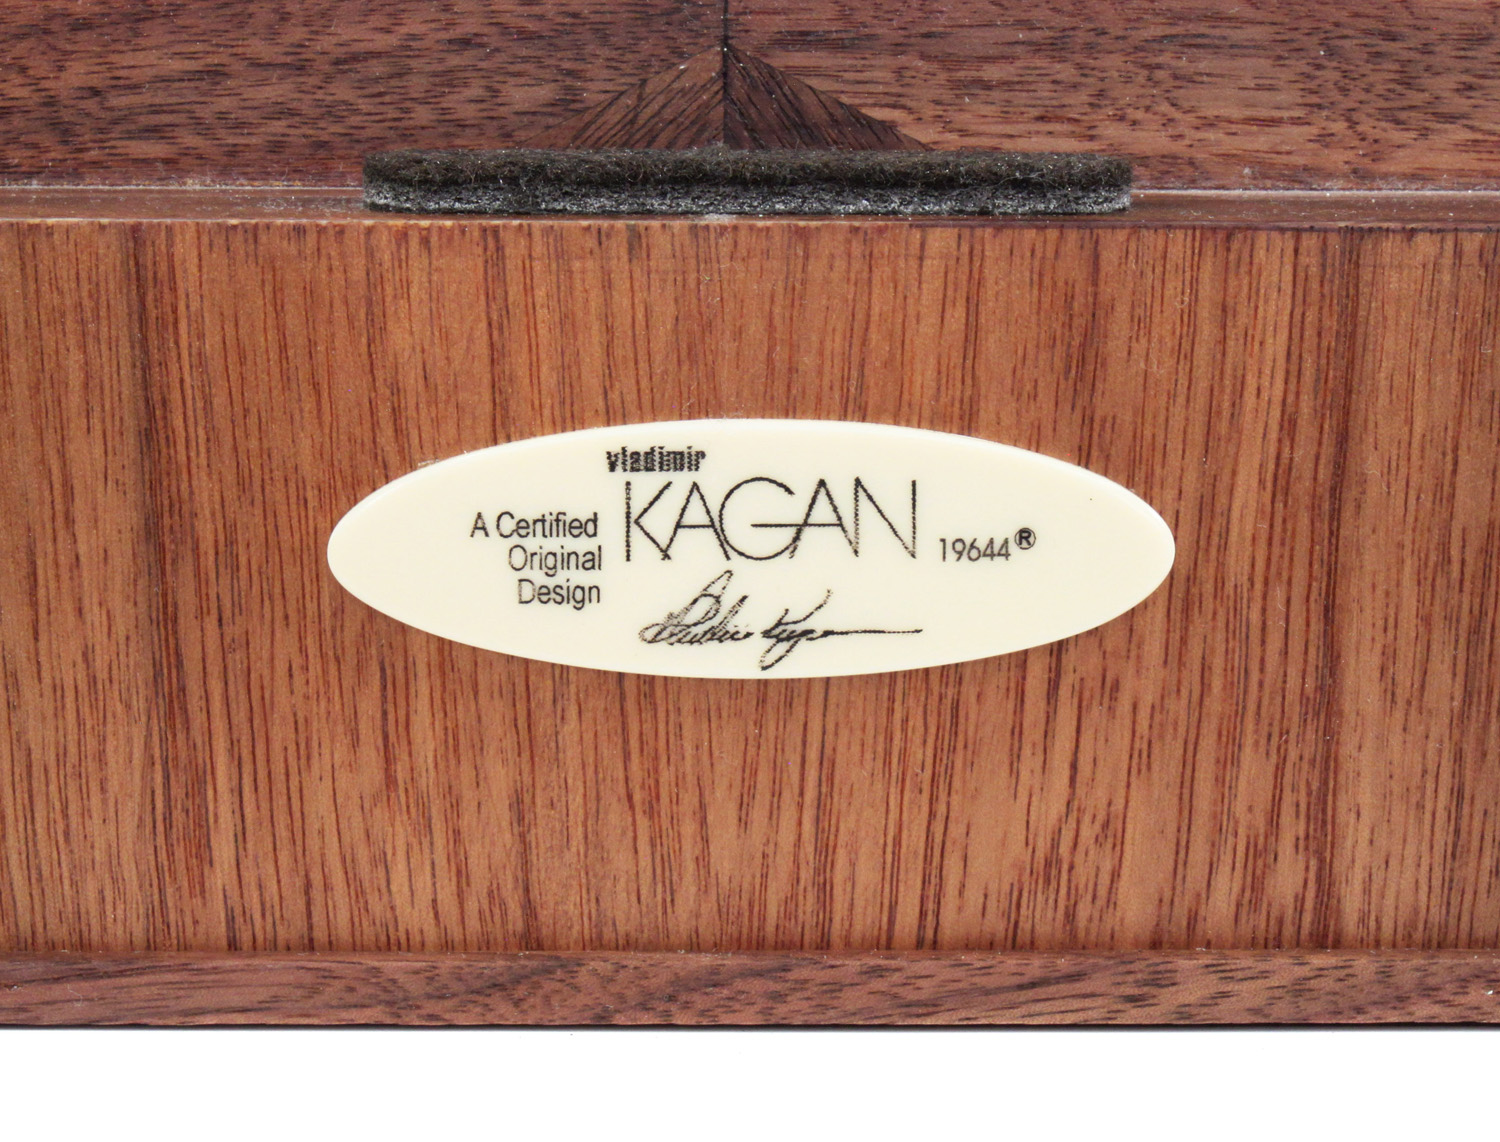 Kagan 120 walnut+white laminate servingcart20 detail9 hires.jpg